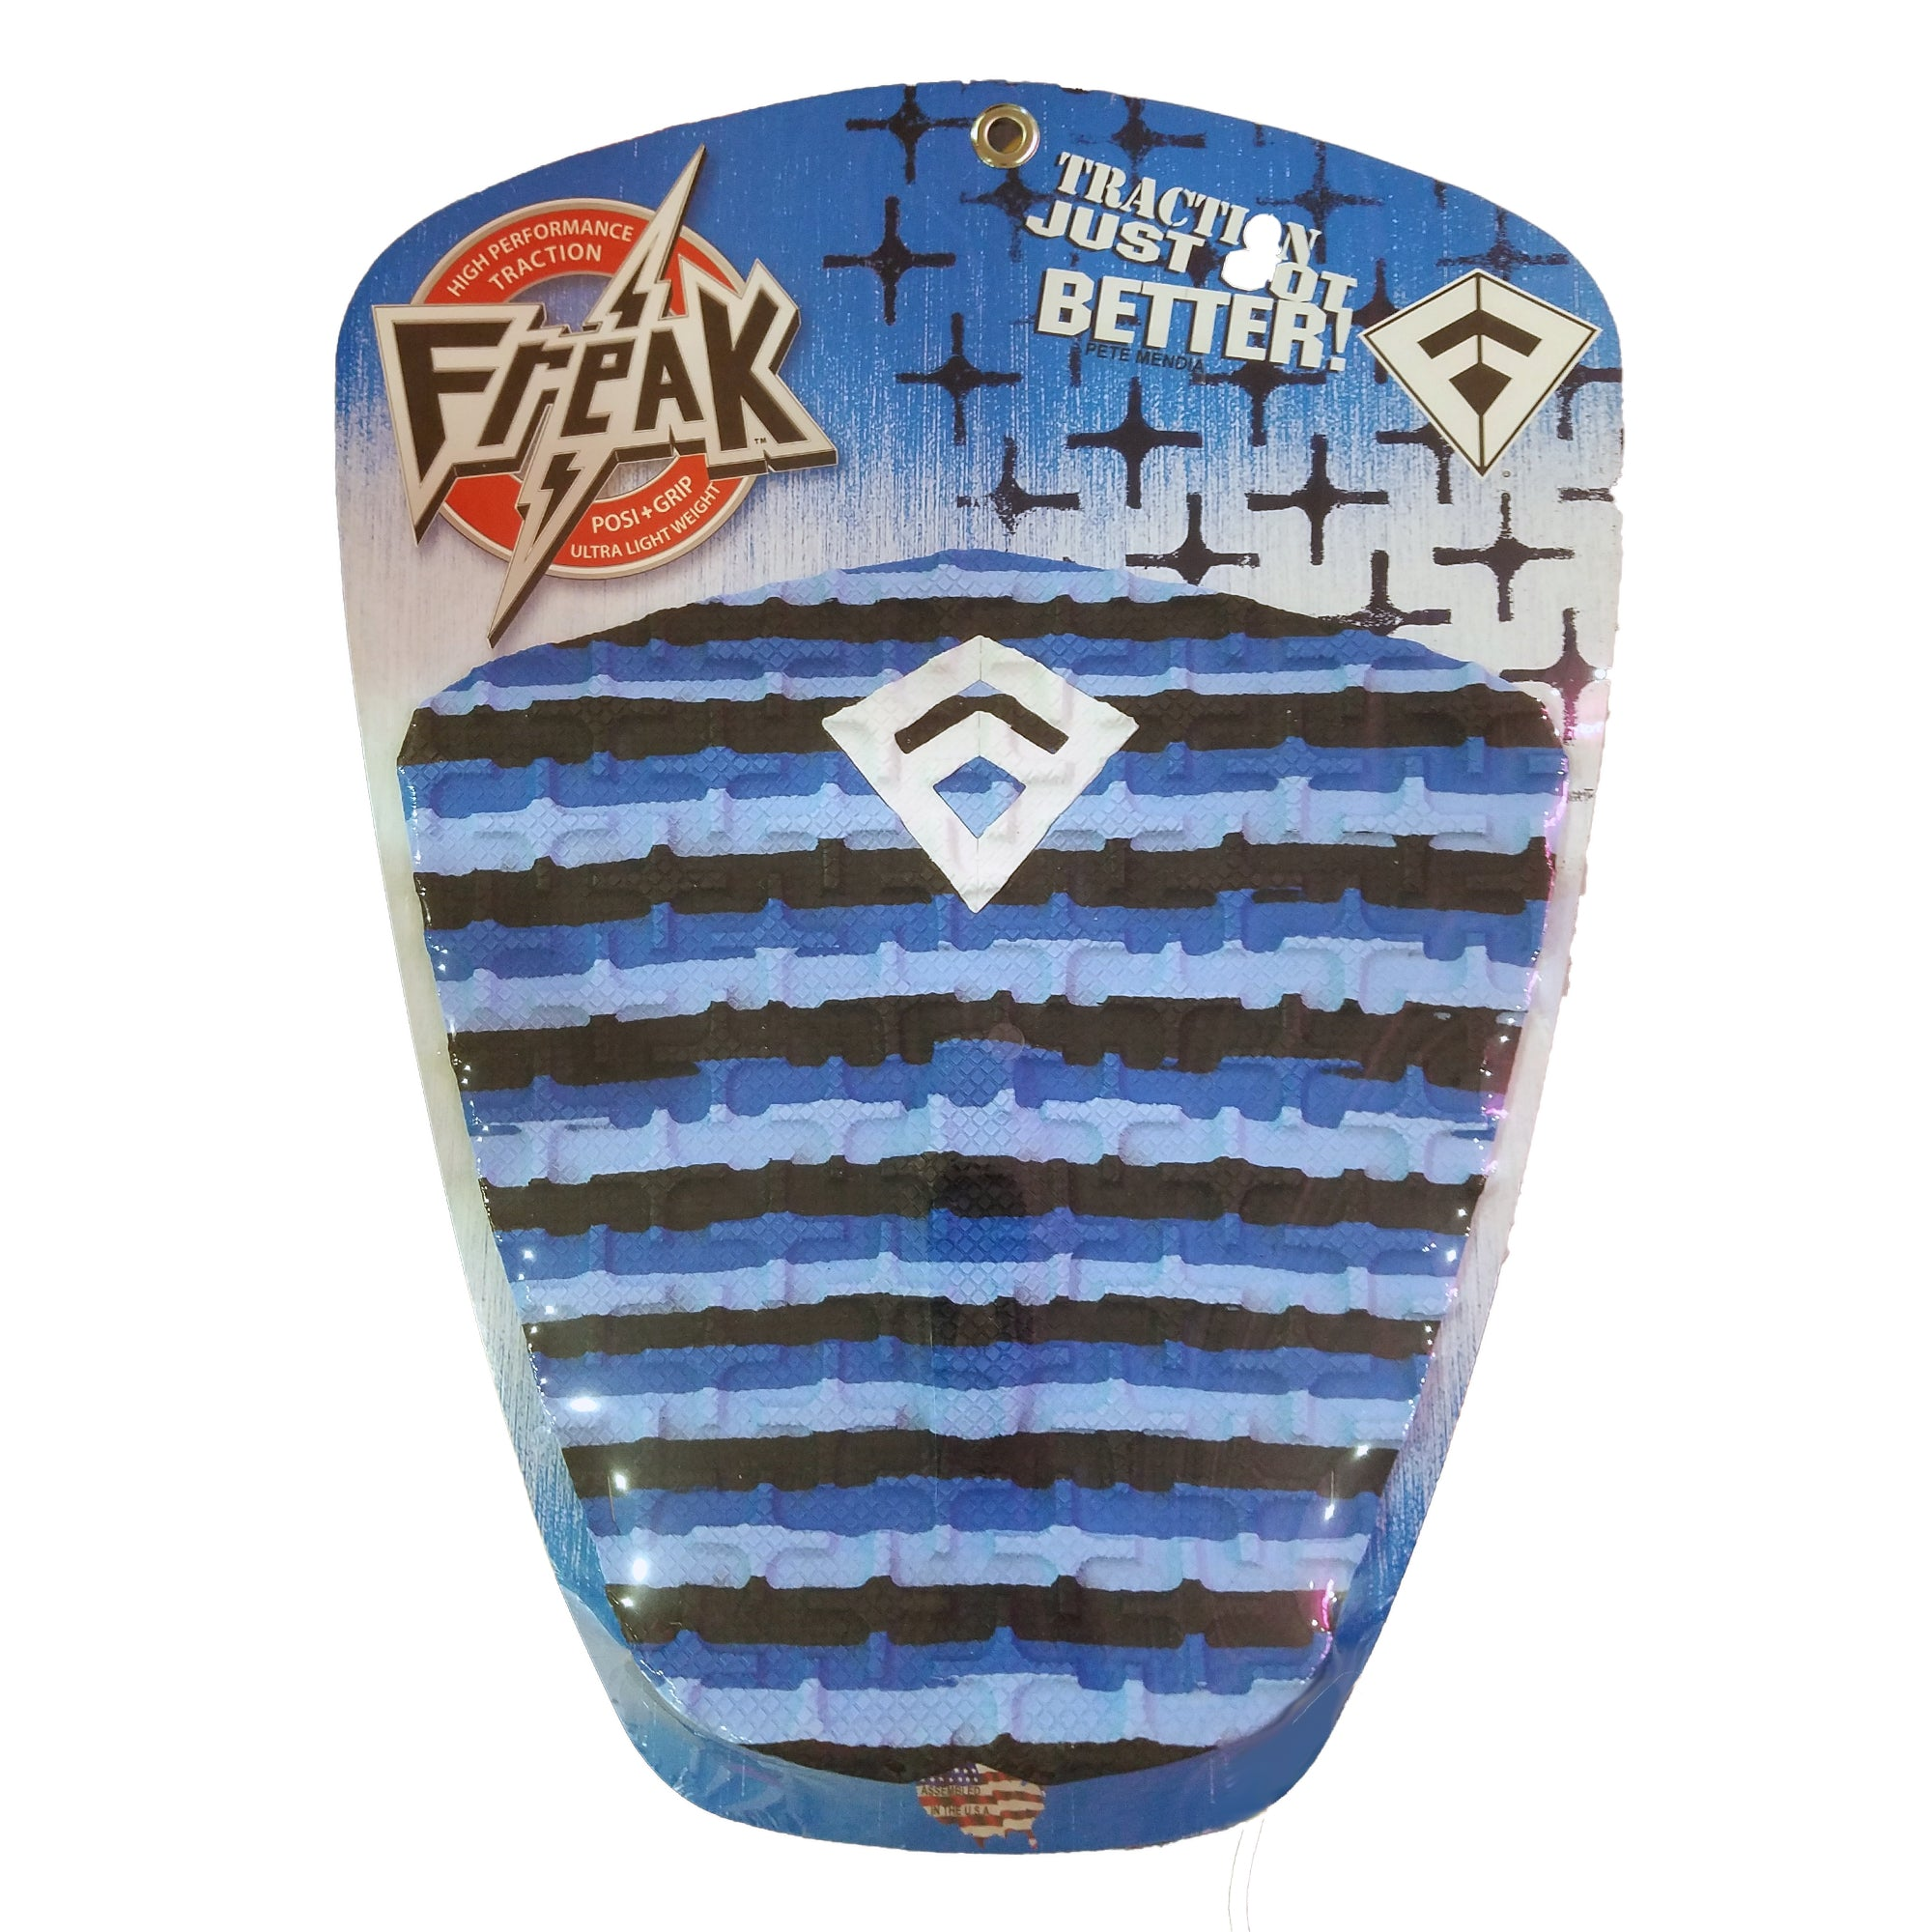 Freak Peter Mendia 3-Piece Traction Pad - Blue/Blue/Black